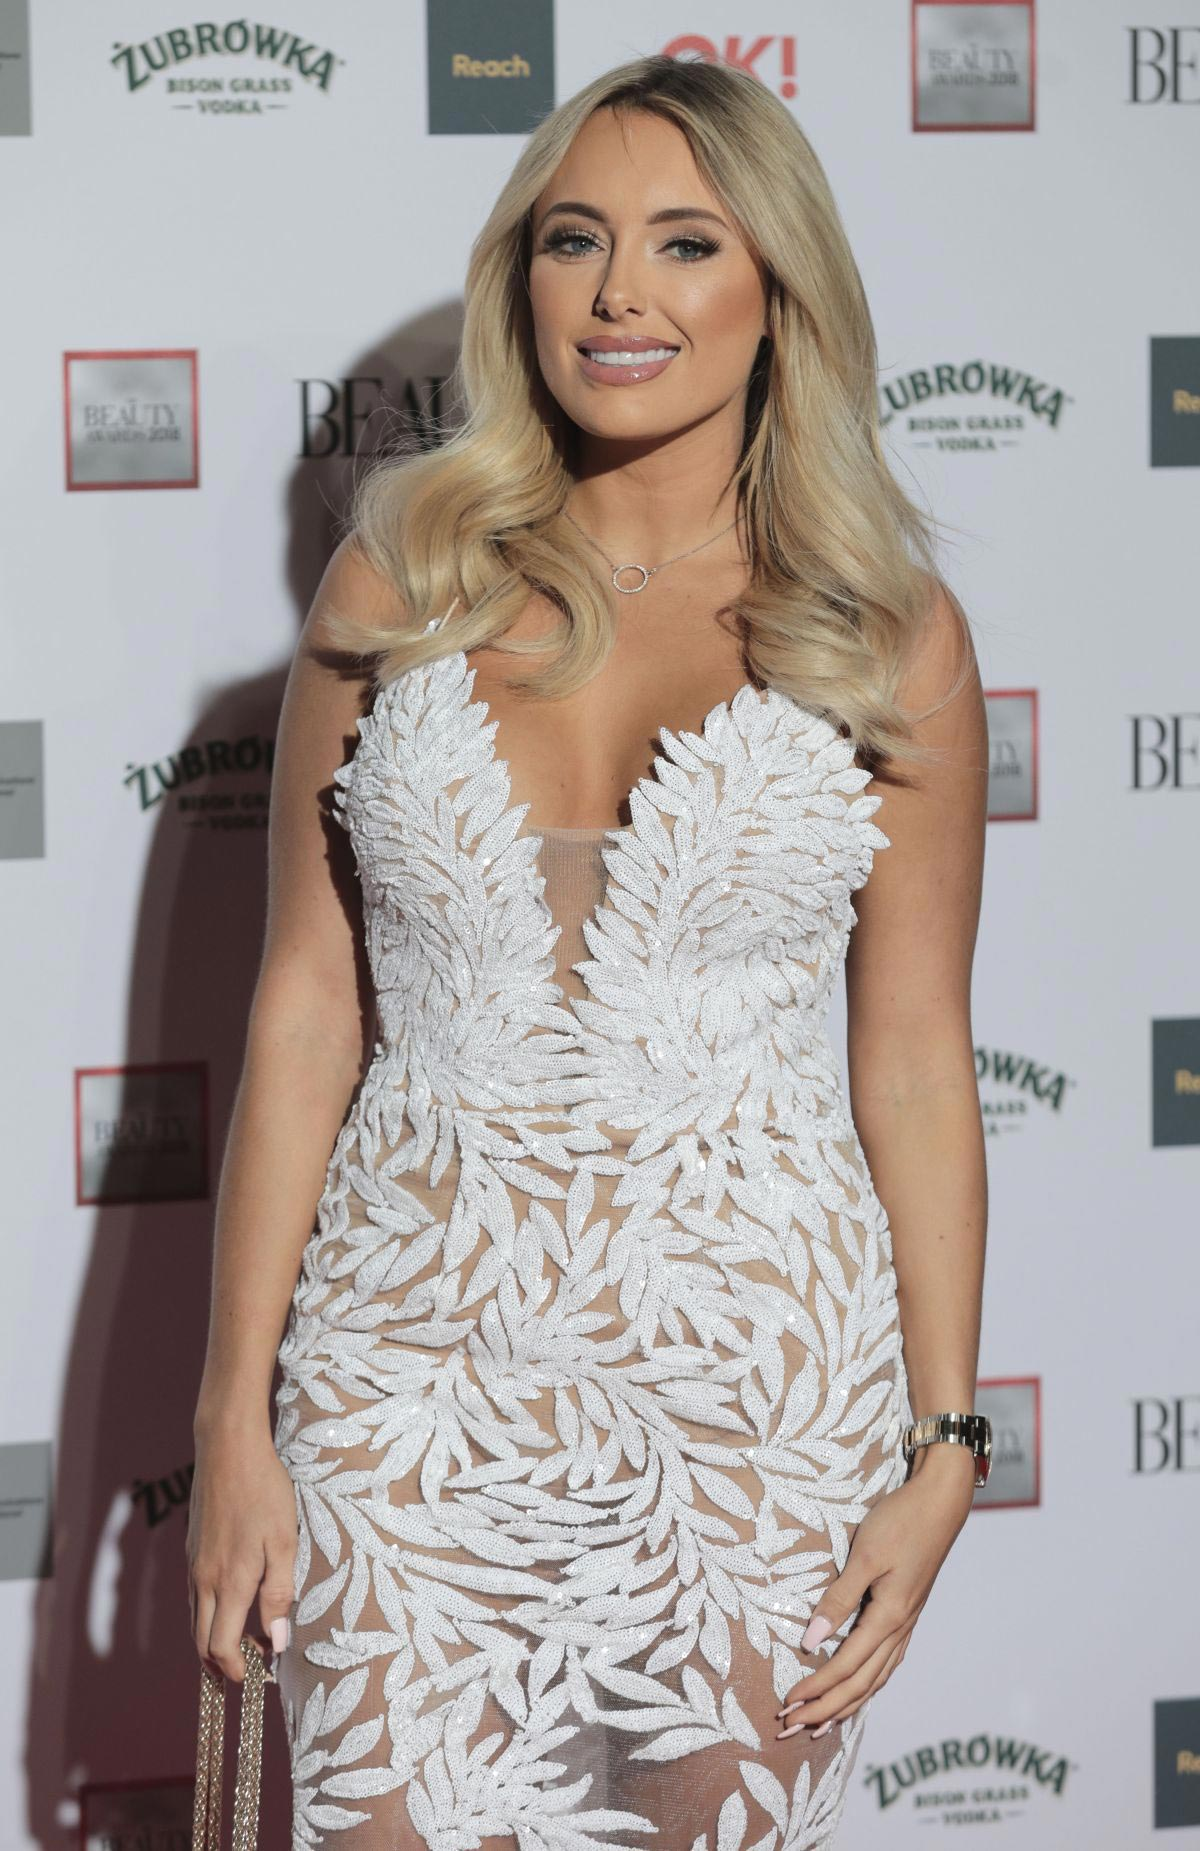 Amber Turner at Beauty Awards 2018 in London 2018/11/26 1